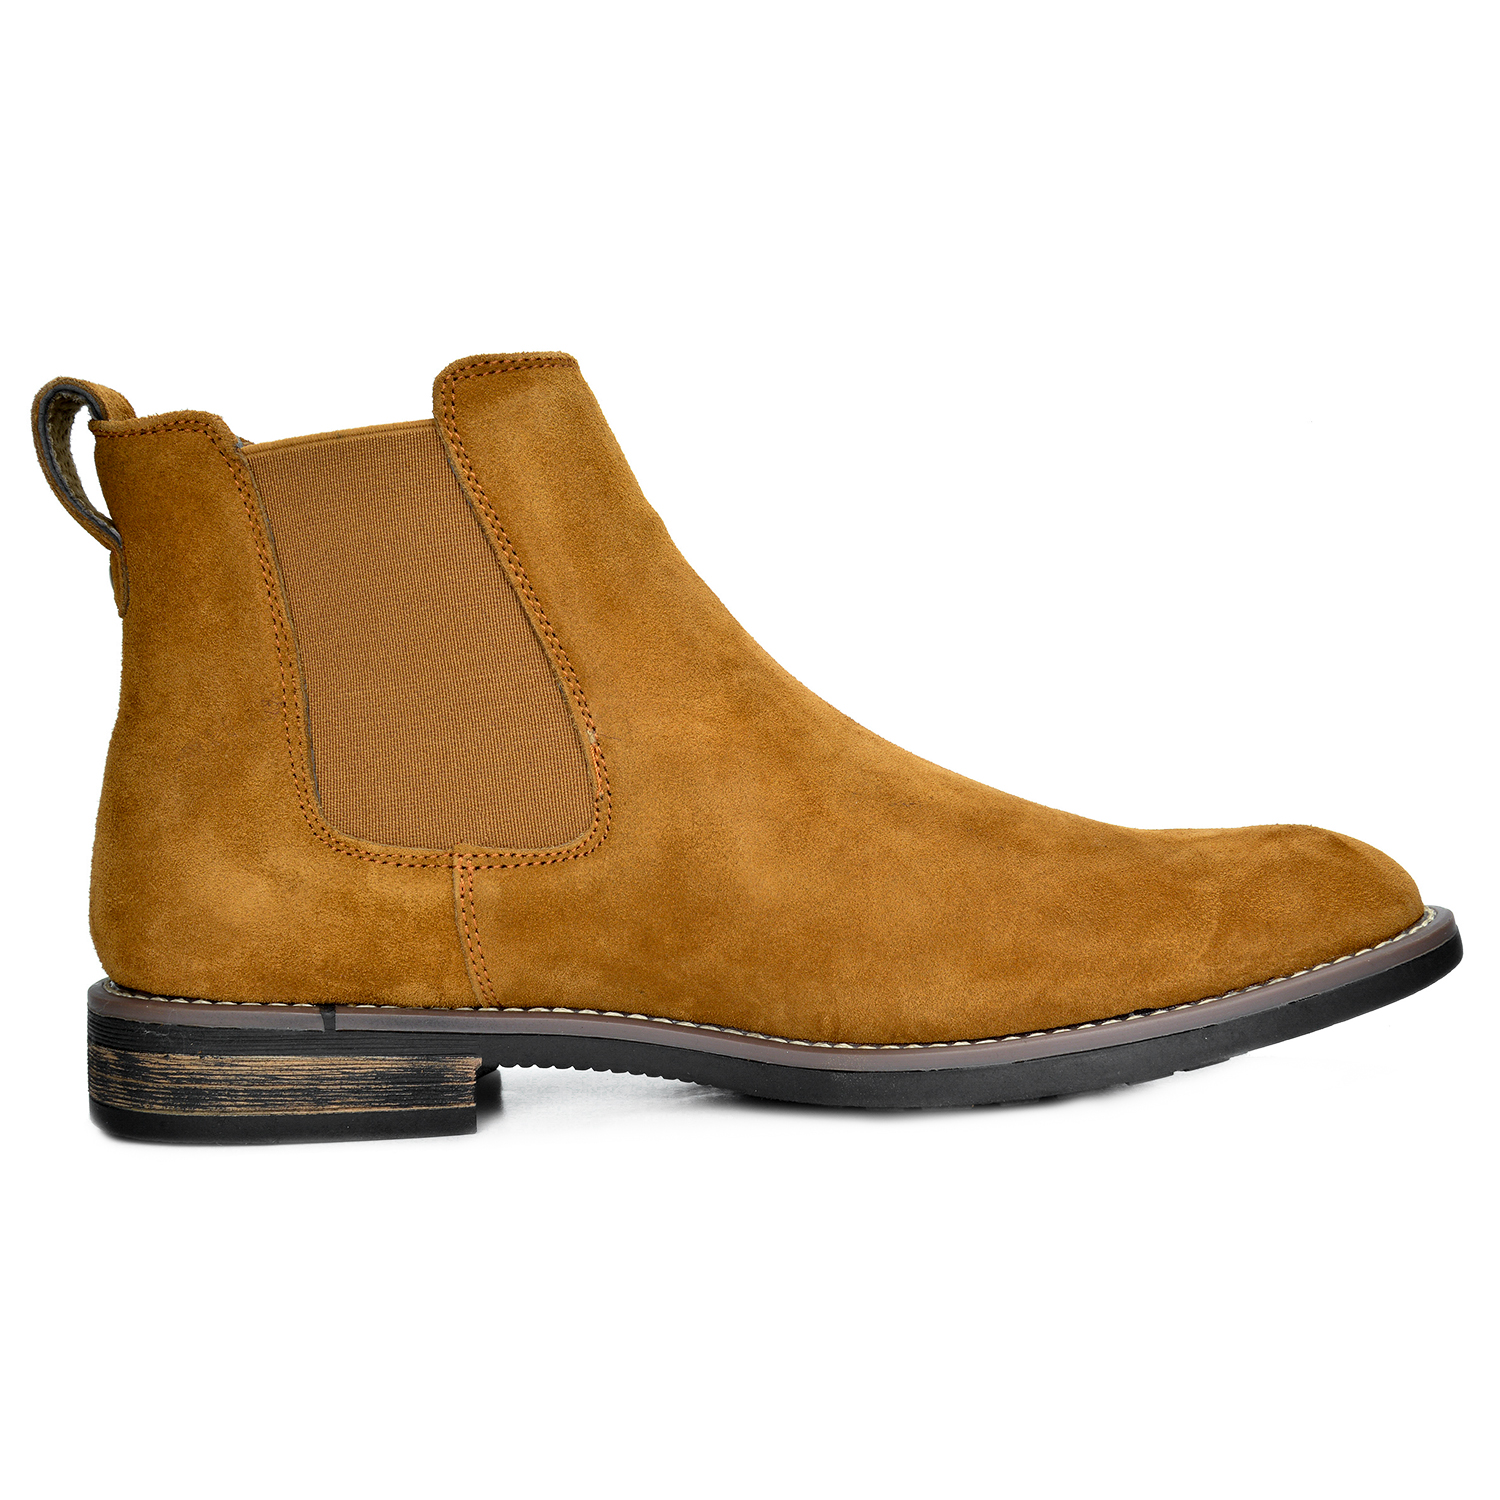 BRUNO-MARC-Men-URBAN-Suede-Leather-Chelsea-Chukka-Dress-Ankle-Boots-Casual-Shoes thumbnail 23